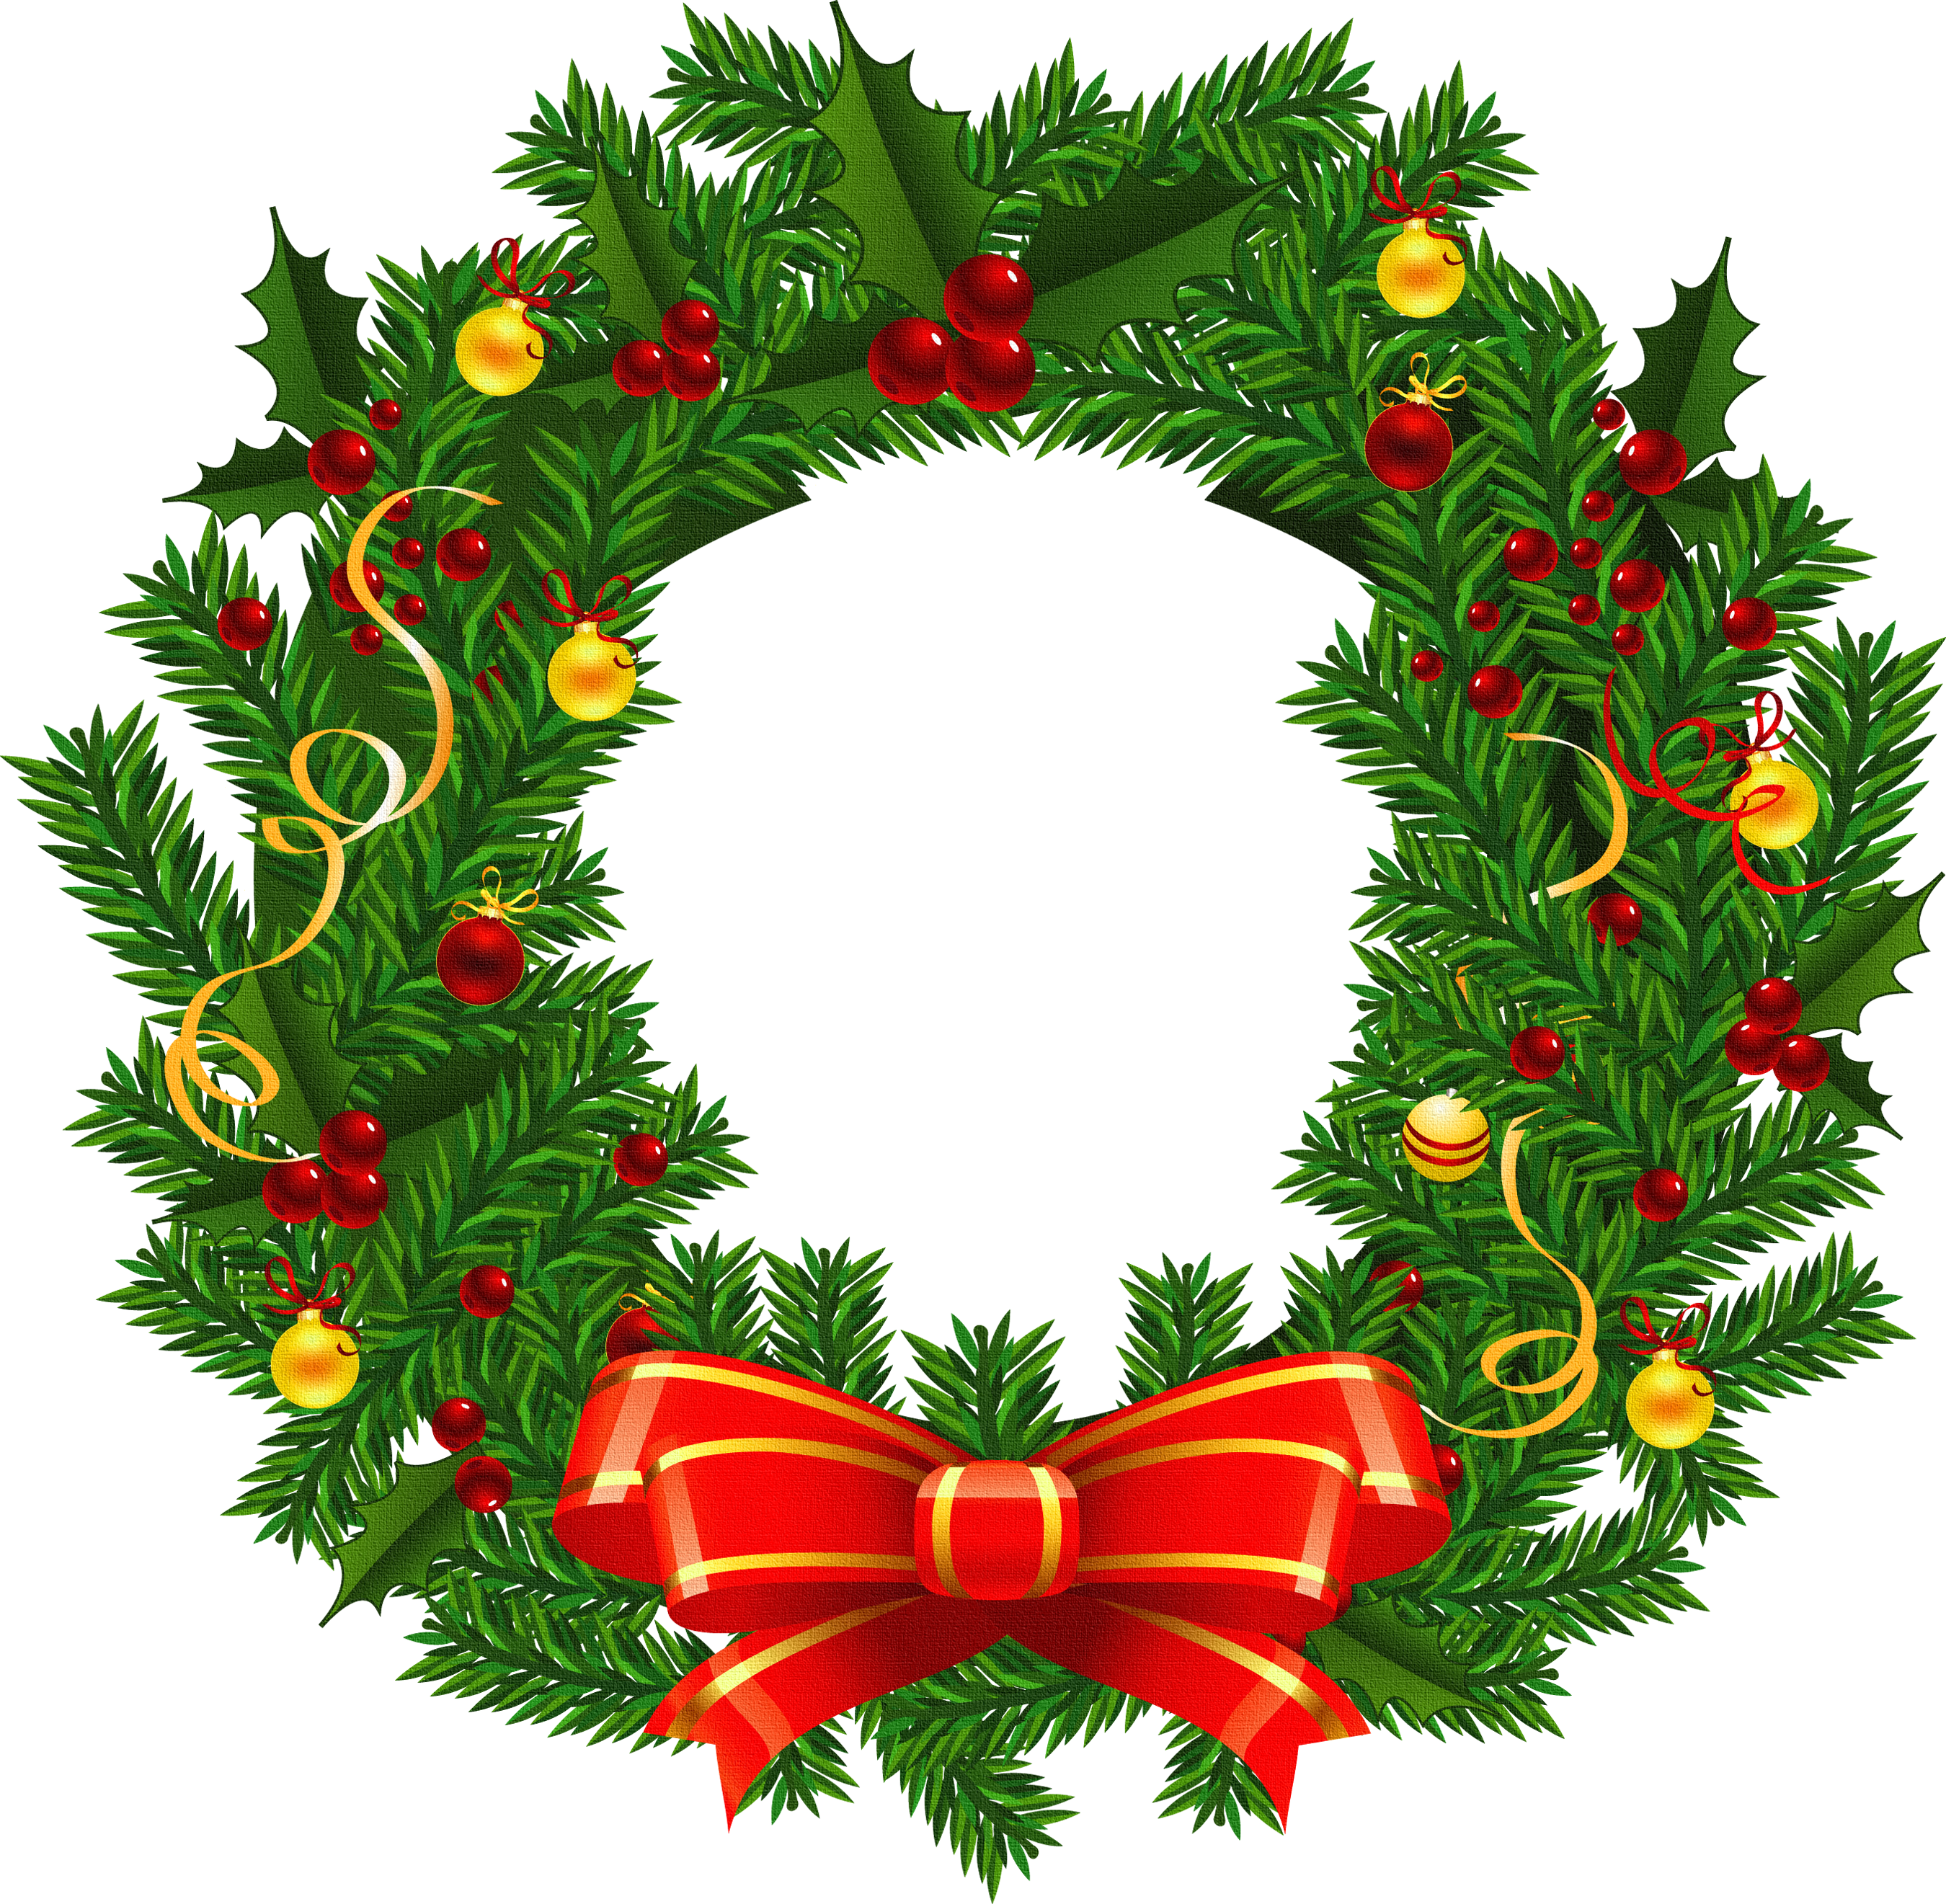 Free Wreath Cliparts, Download Free Clip Art, Free Clip Art.